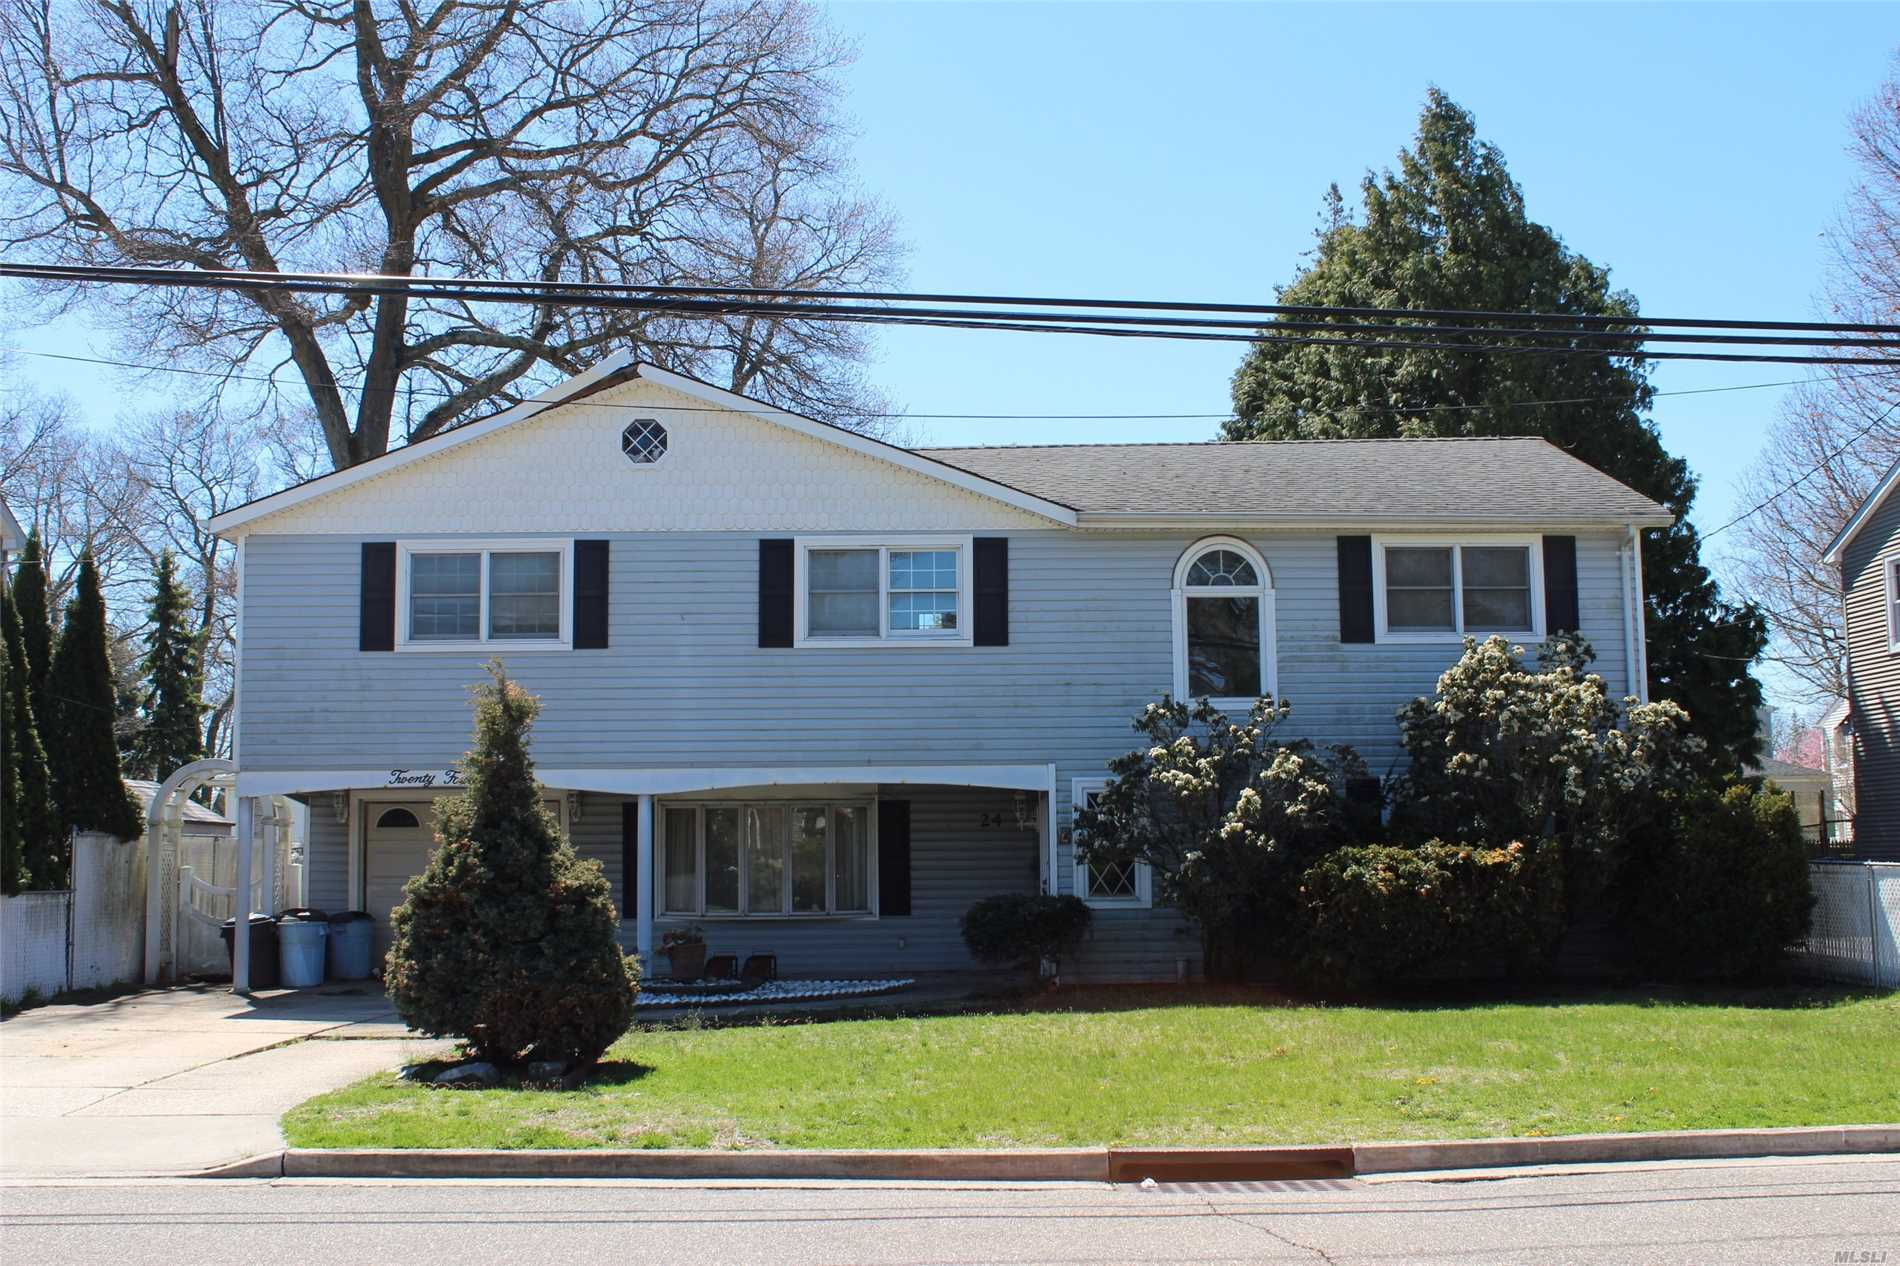 Large 6 Bedroom with tons of potential , Being sold as is, Cash buyers or Rehab loan buyers only, Gas in the house